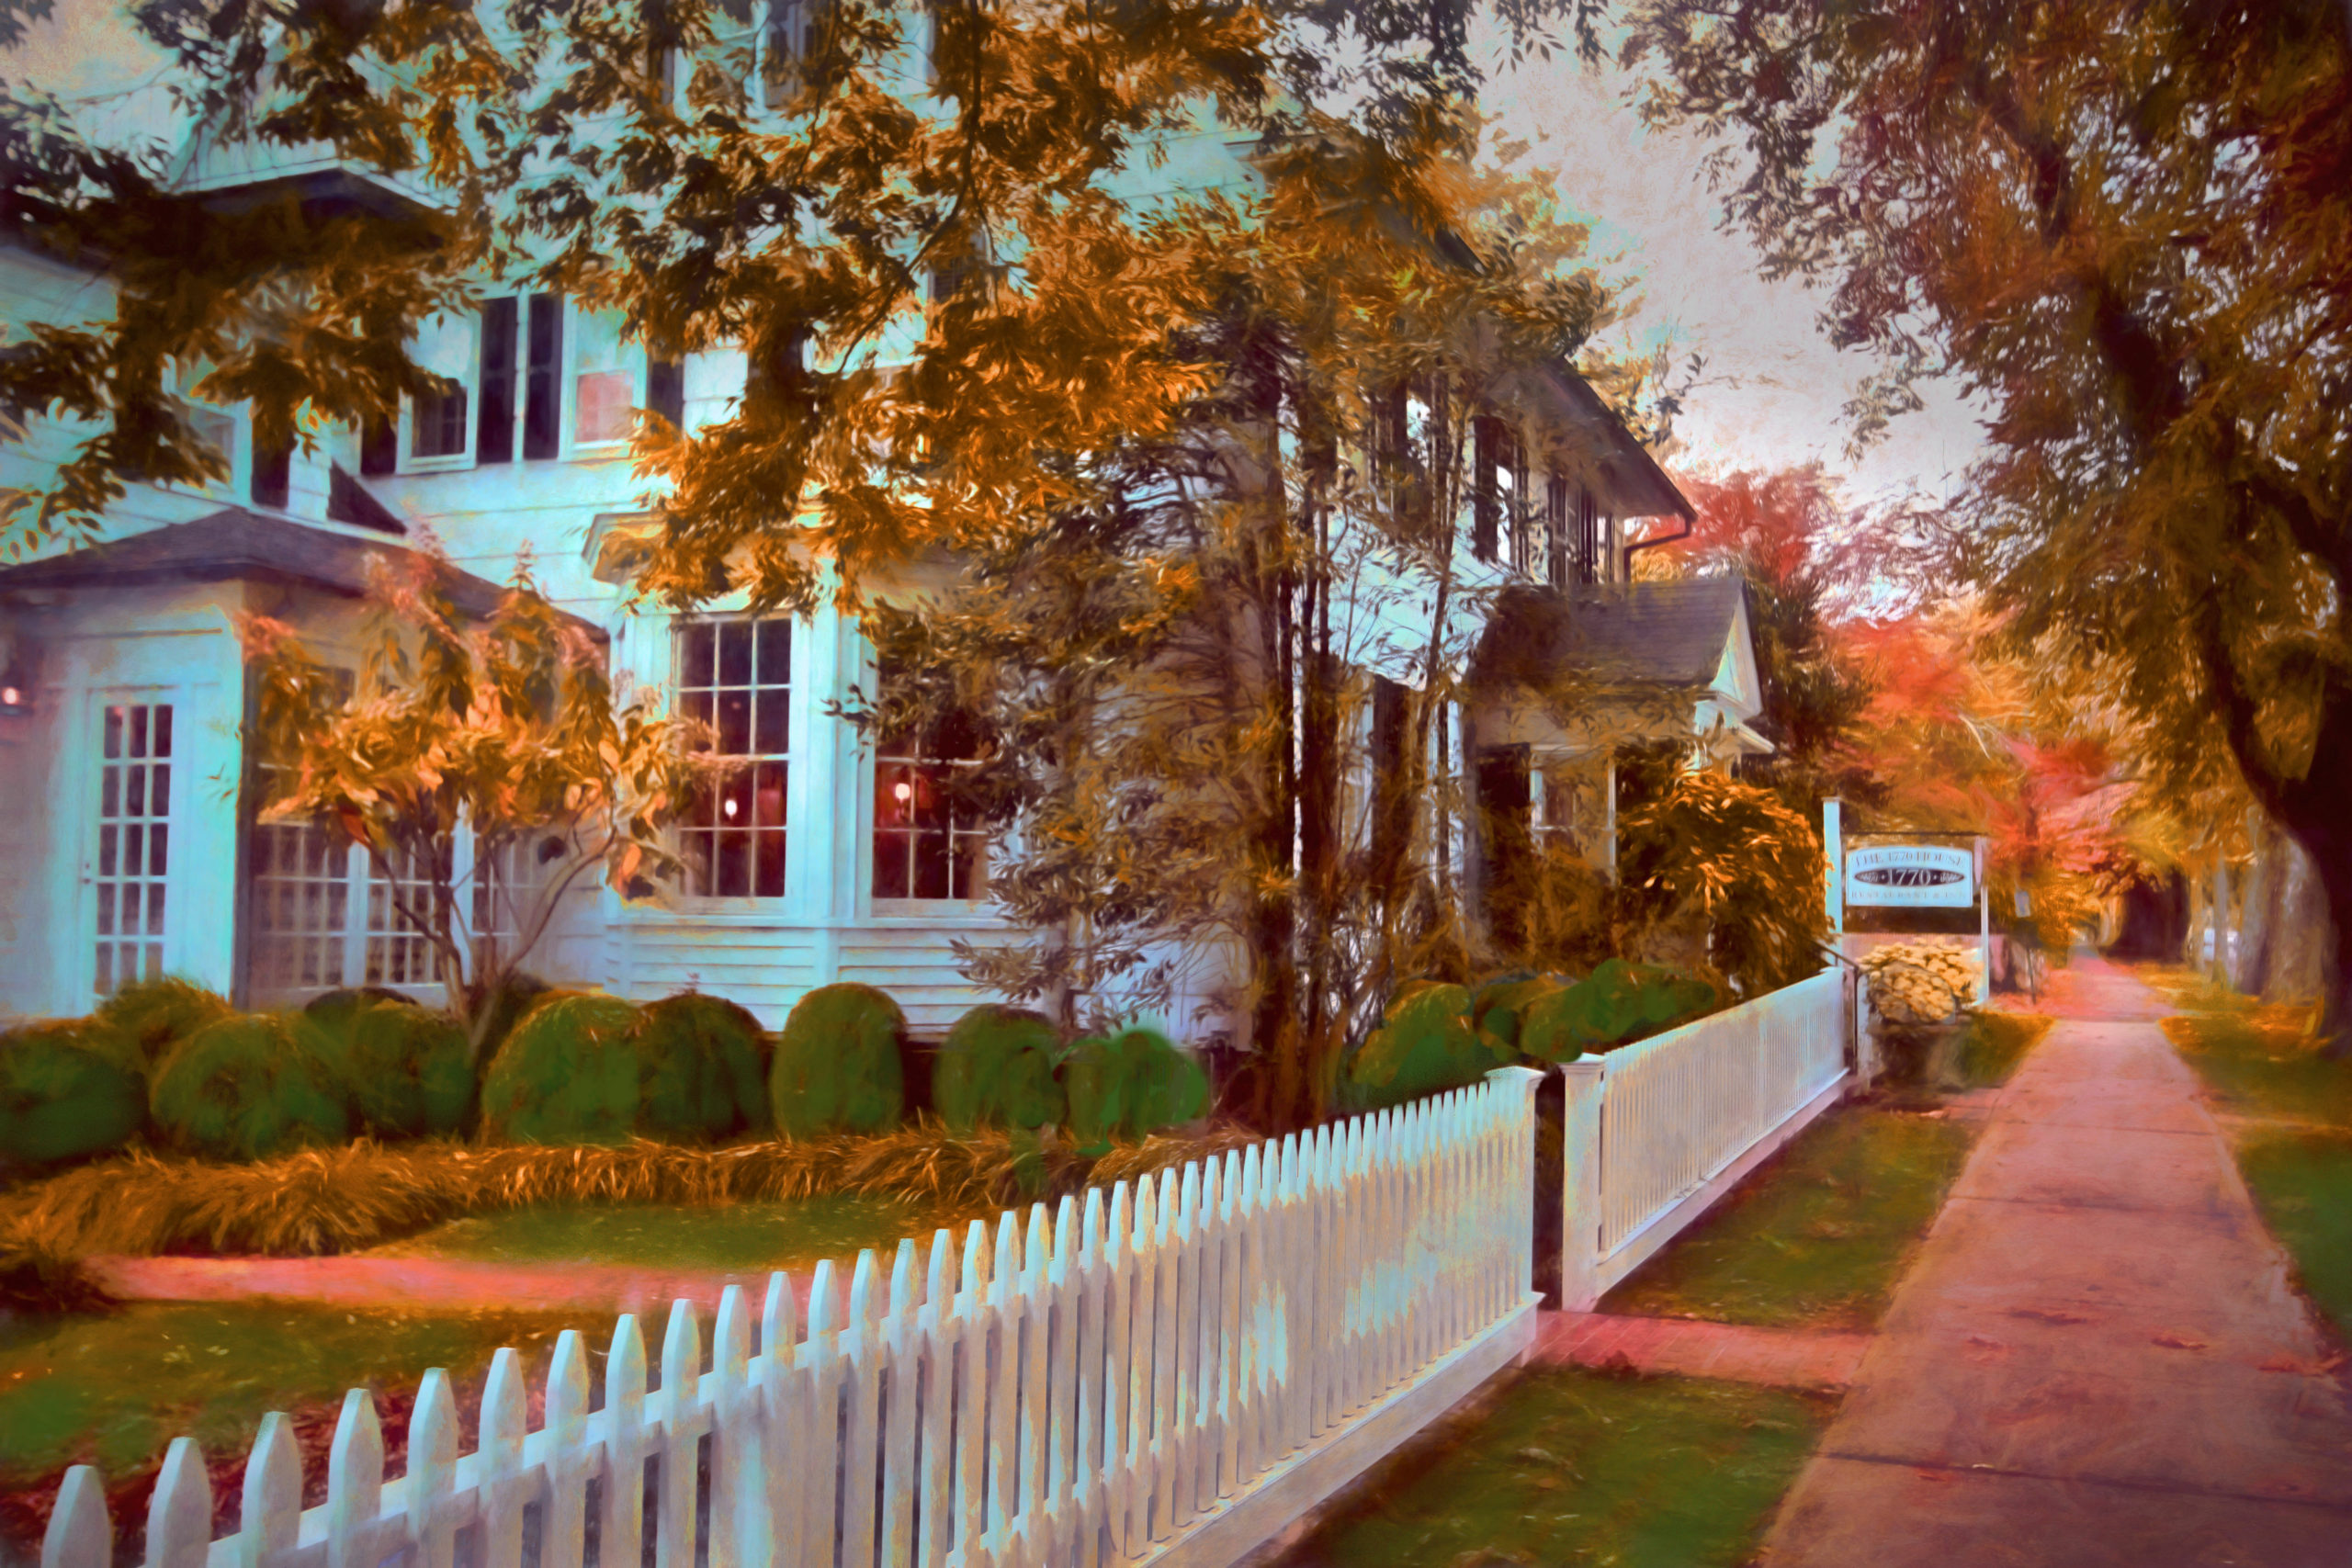 The 1770 House in fall.